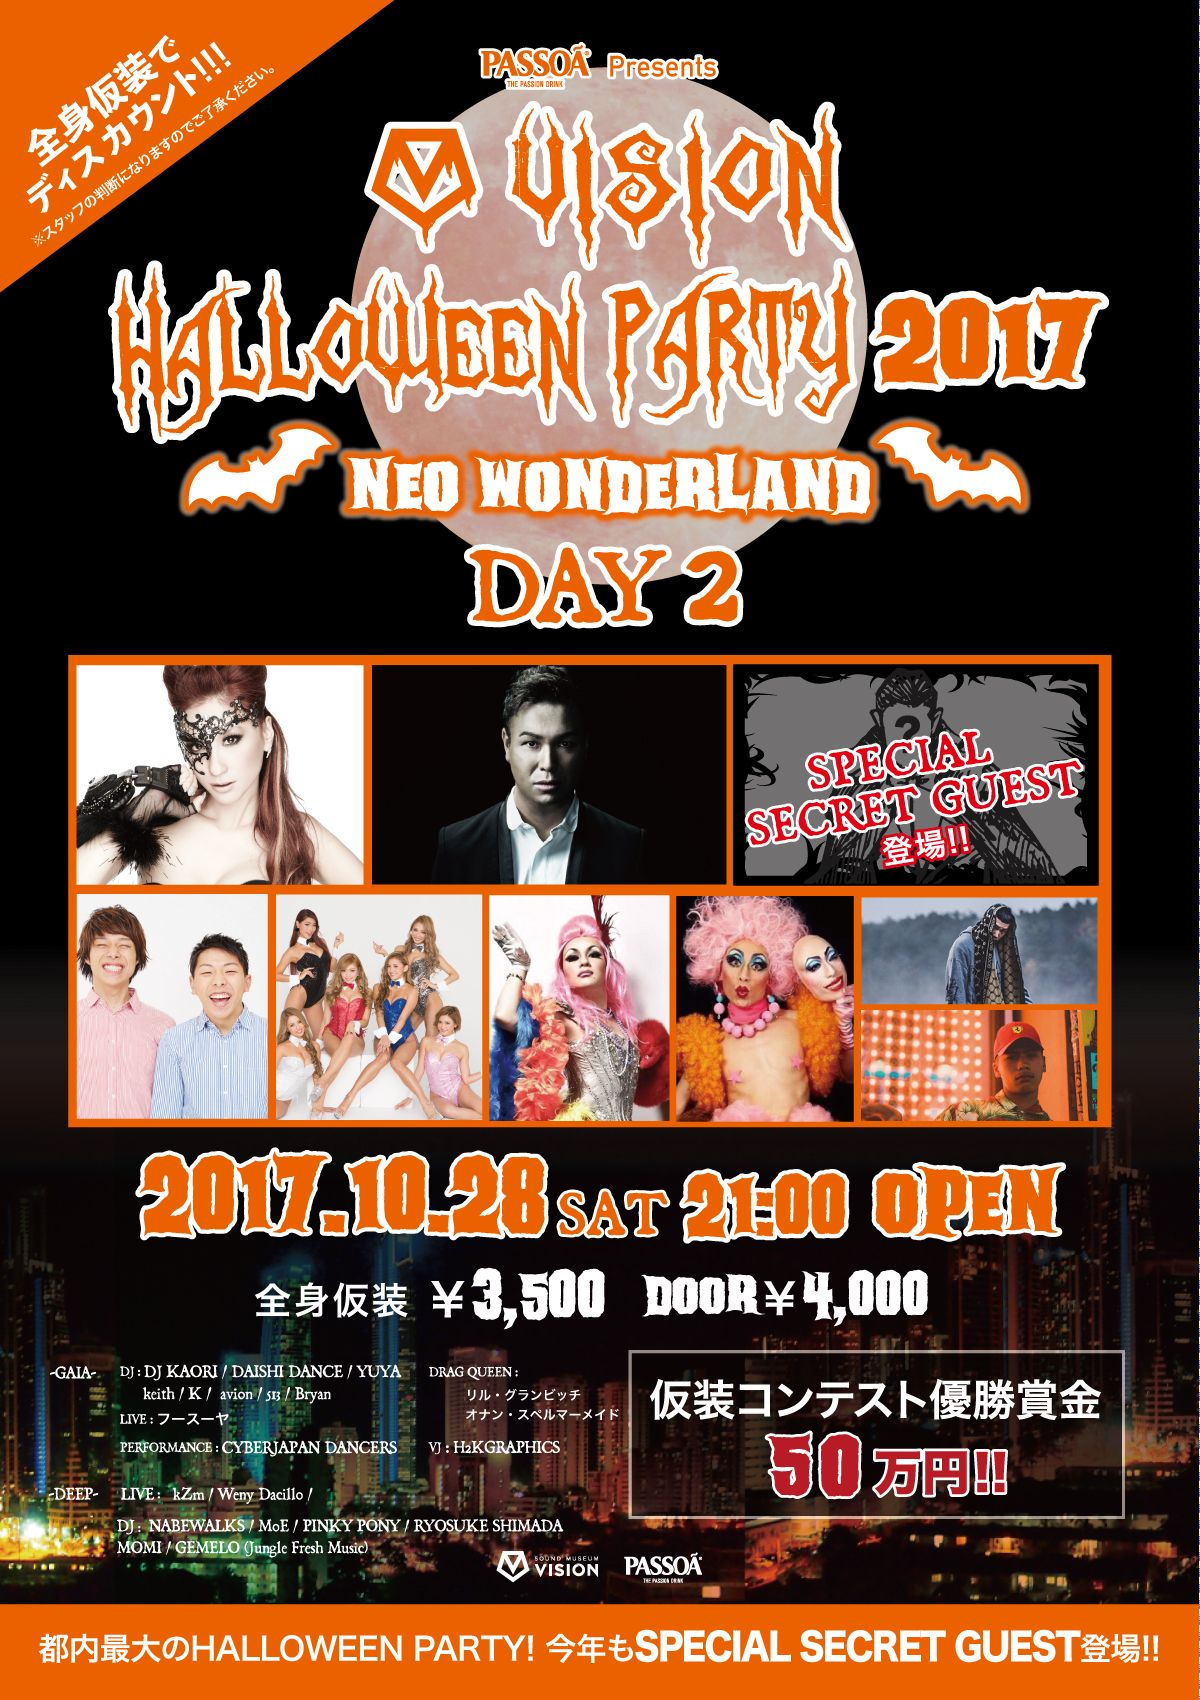 PASSOA Presents VISION HALLOWEEN PARTY 2017 〜NEO WONDERLAND〜DAY2